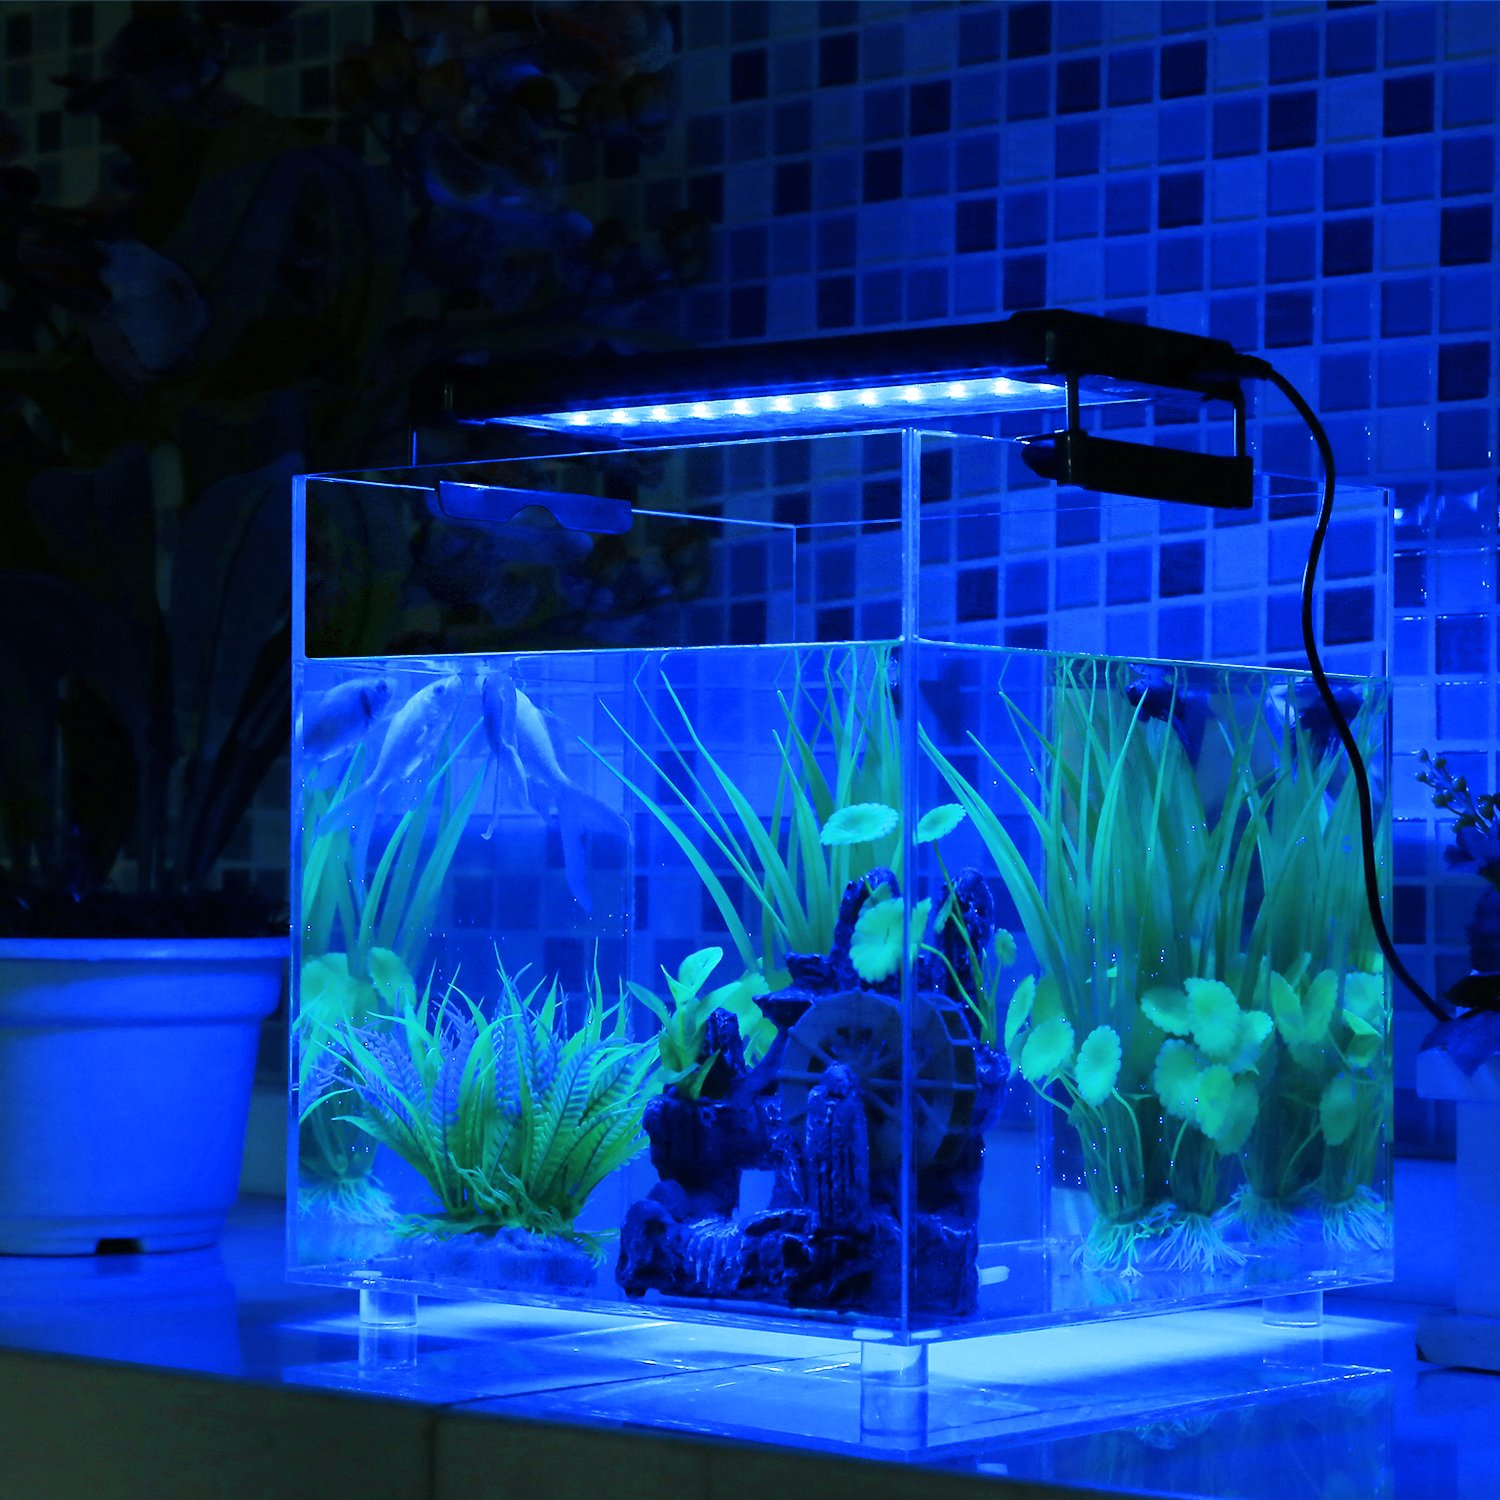 DECKEY Lámpara de Acuario Luces para Acuarios y estanques Se aplica a 30-50 cm 6W 24 LED Blanco y 12 LED Azul con Enchufe EU: Amazon.es: Productos para ...